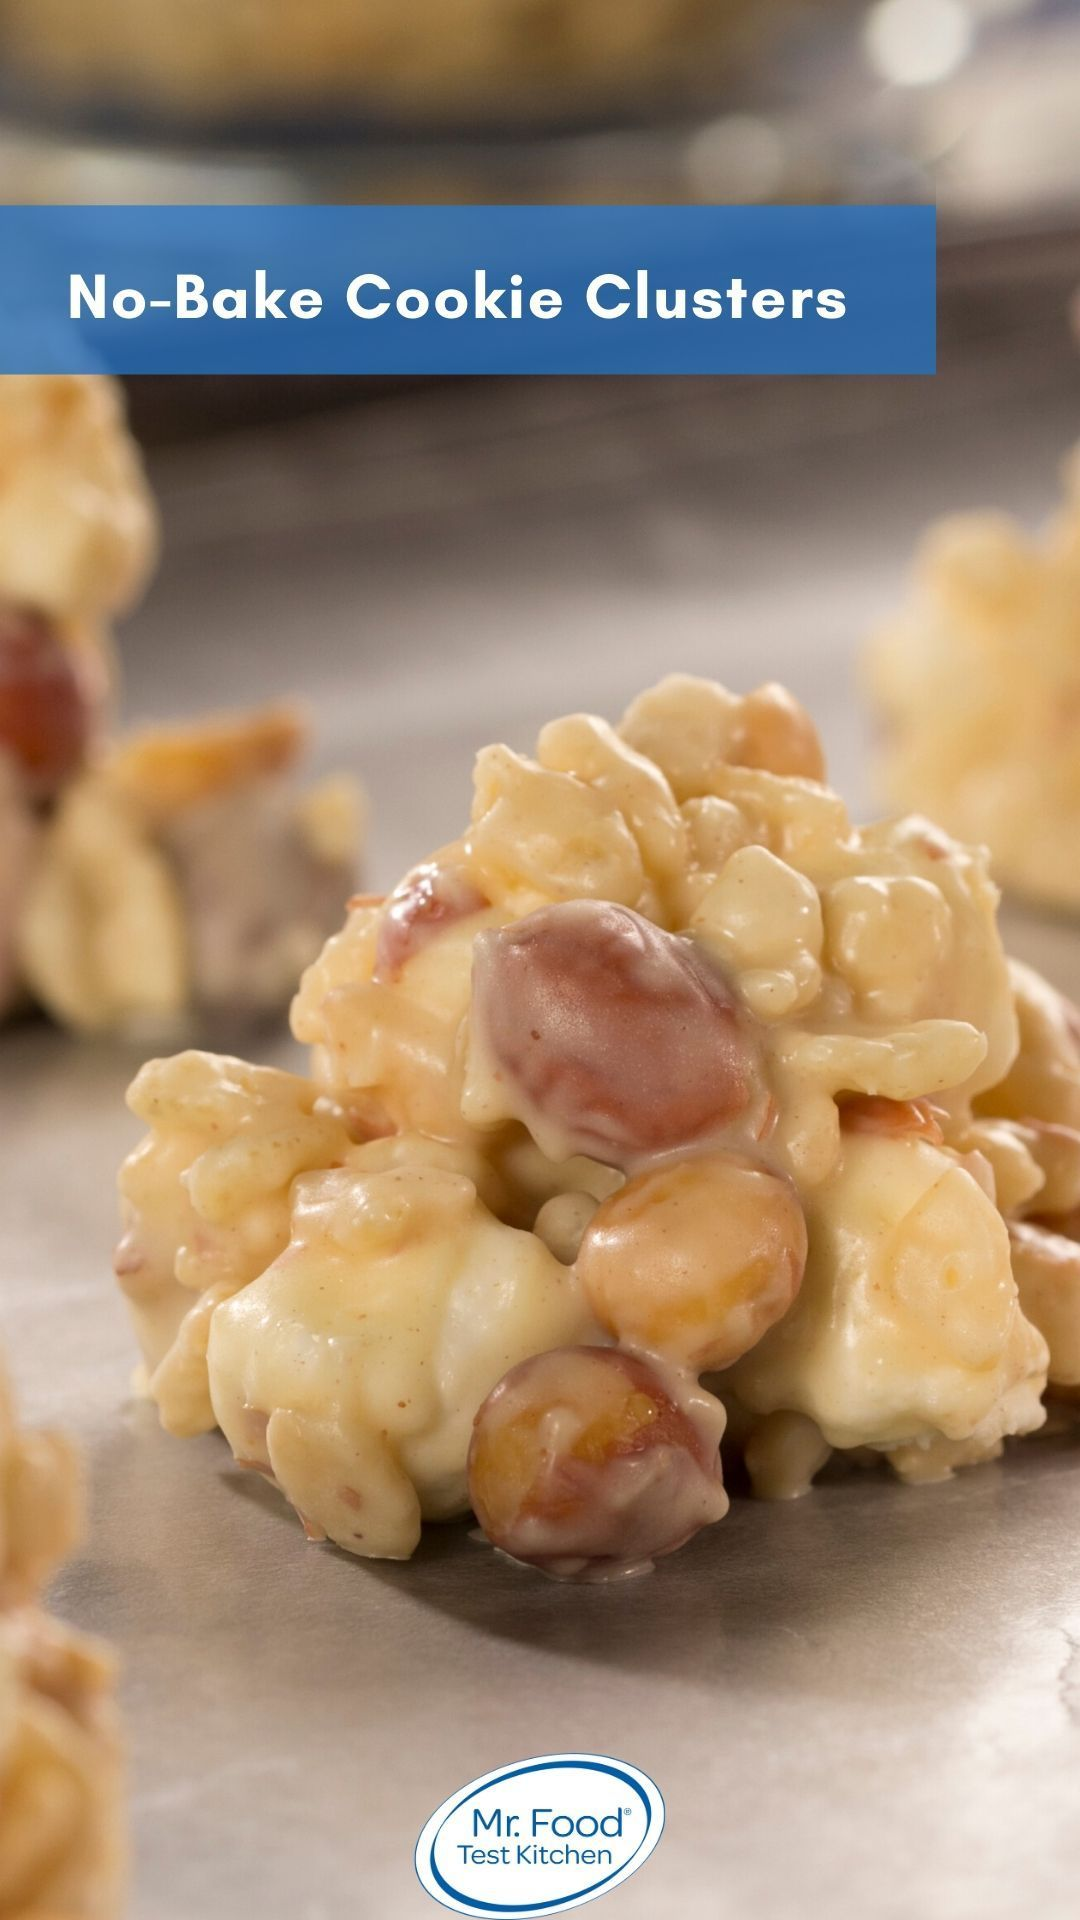 No Bake Cookie Clusters Recipe Homemade Recipes Dessert Recipes Homemade Recipes